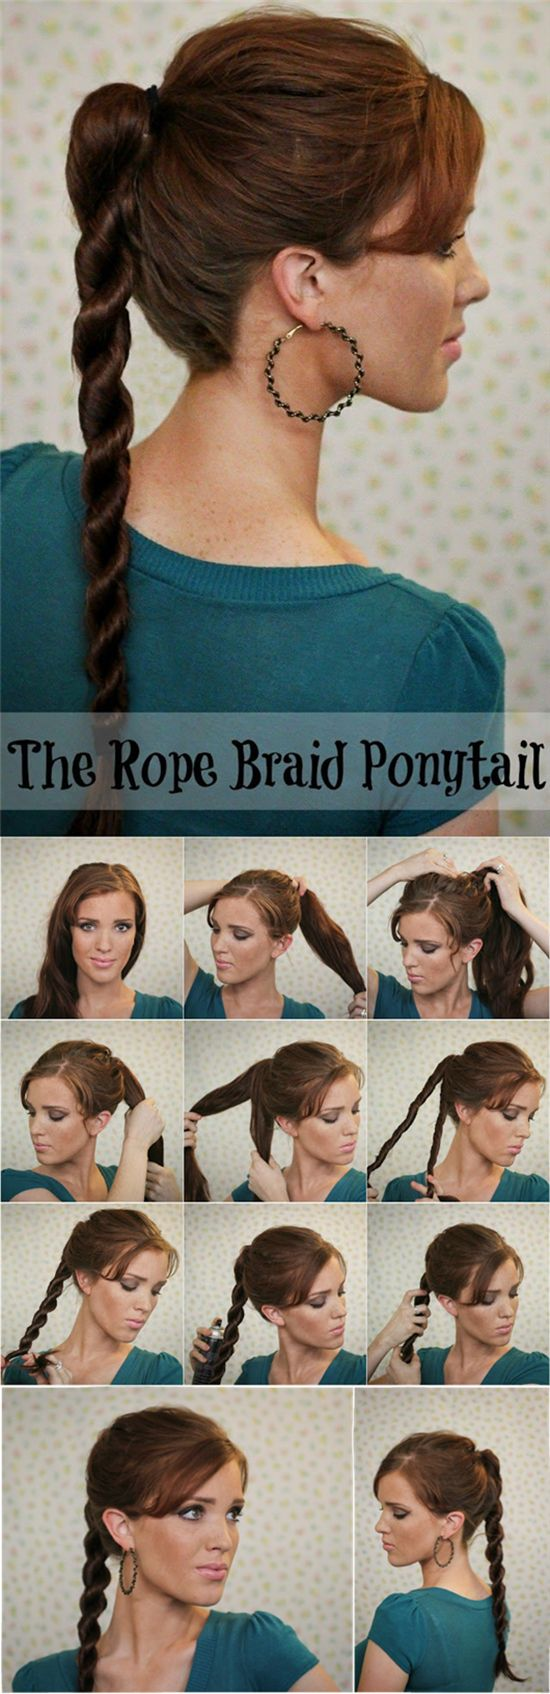 #ponytail #hair #hairdo #hairstyles #hairstylesforlonghair #hairtips #tutorial #DIY #stepbystep #longhair #howto #guide #everydayhairstyle #easyhairstyle #braid #hairextensions